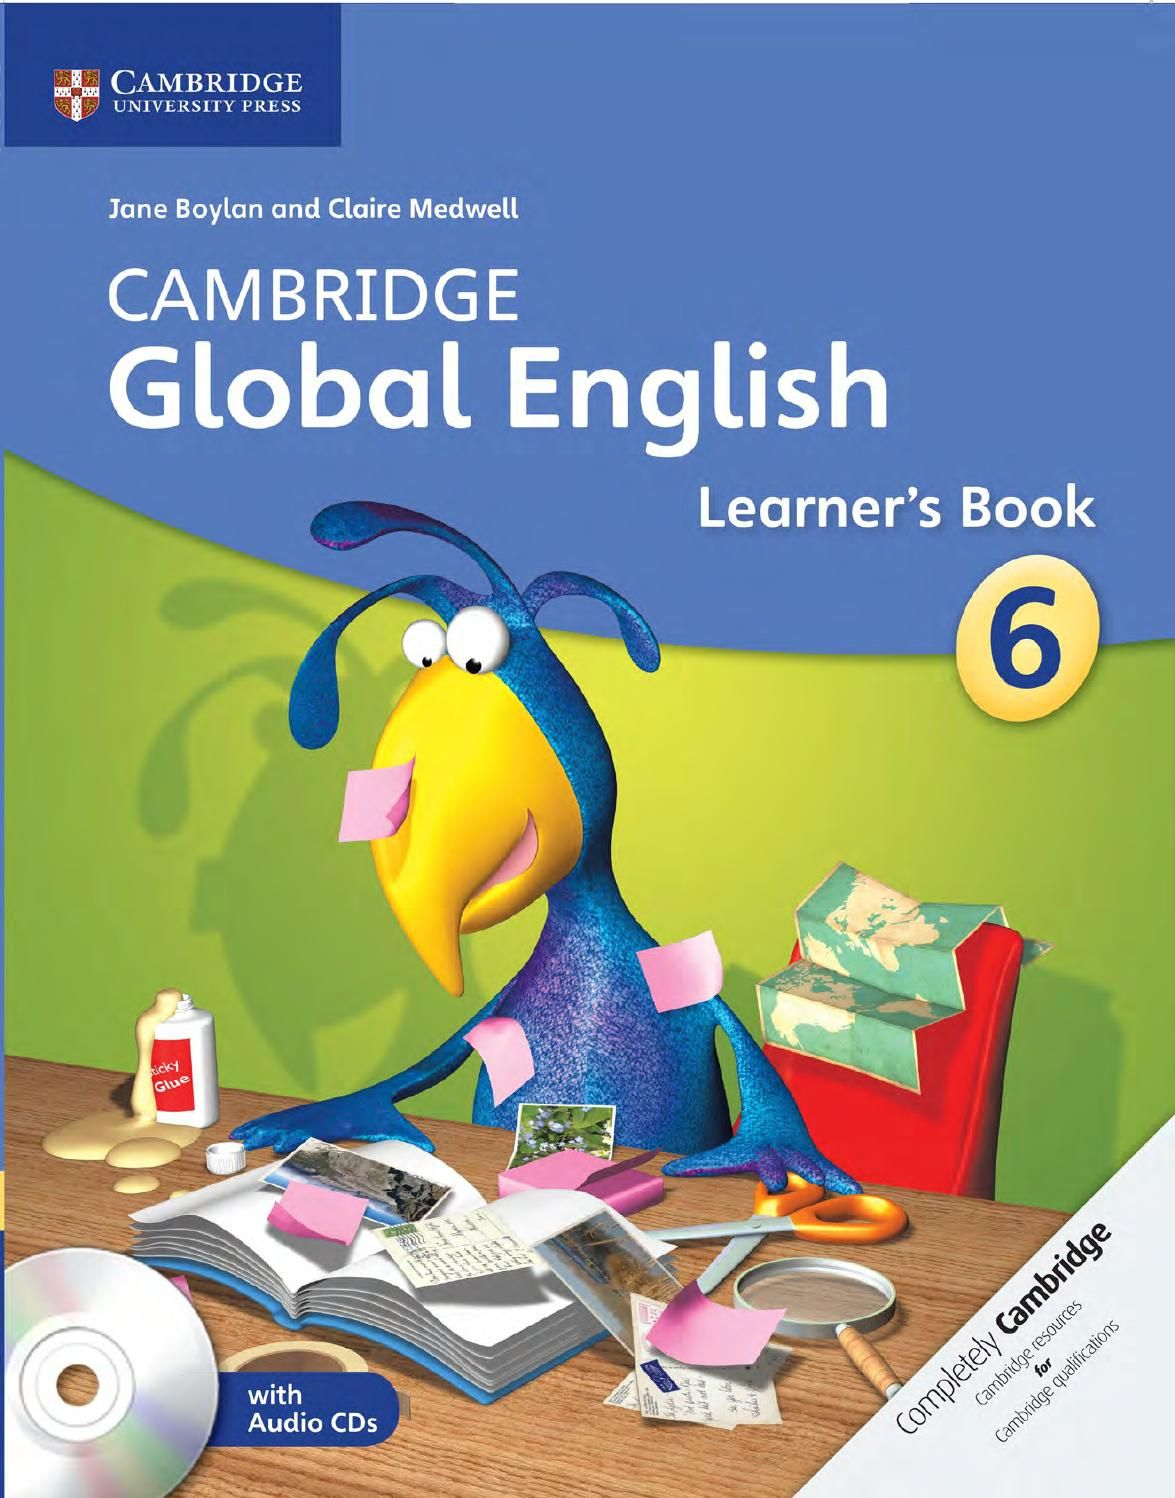 Preview Cambridge Global English Learner S Book 6 English Teacher Resources English Learner Primary English